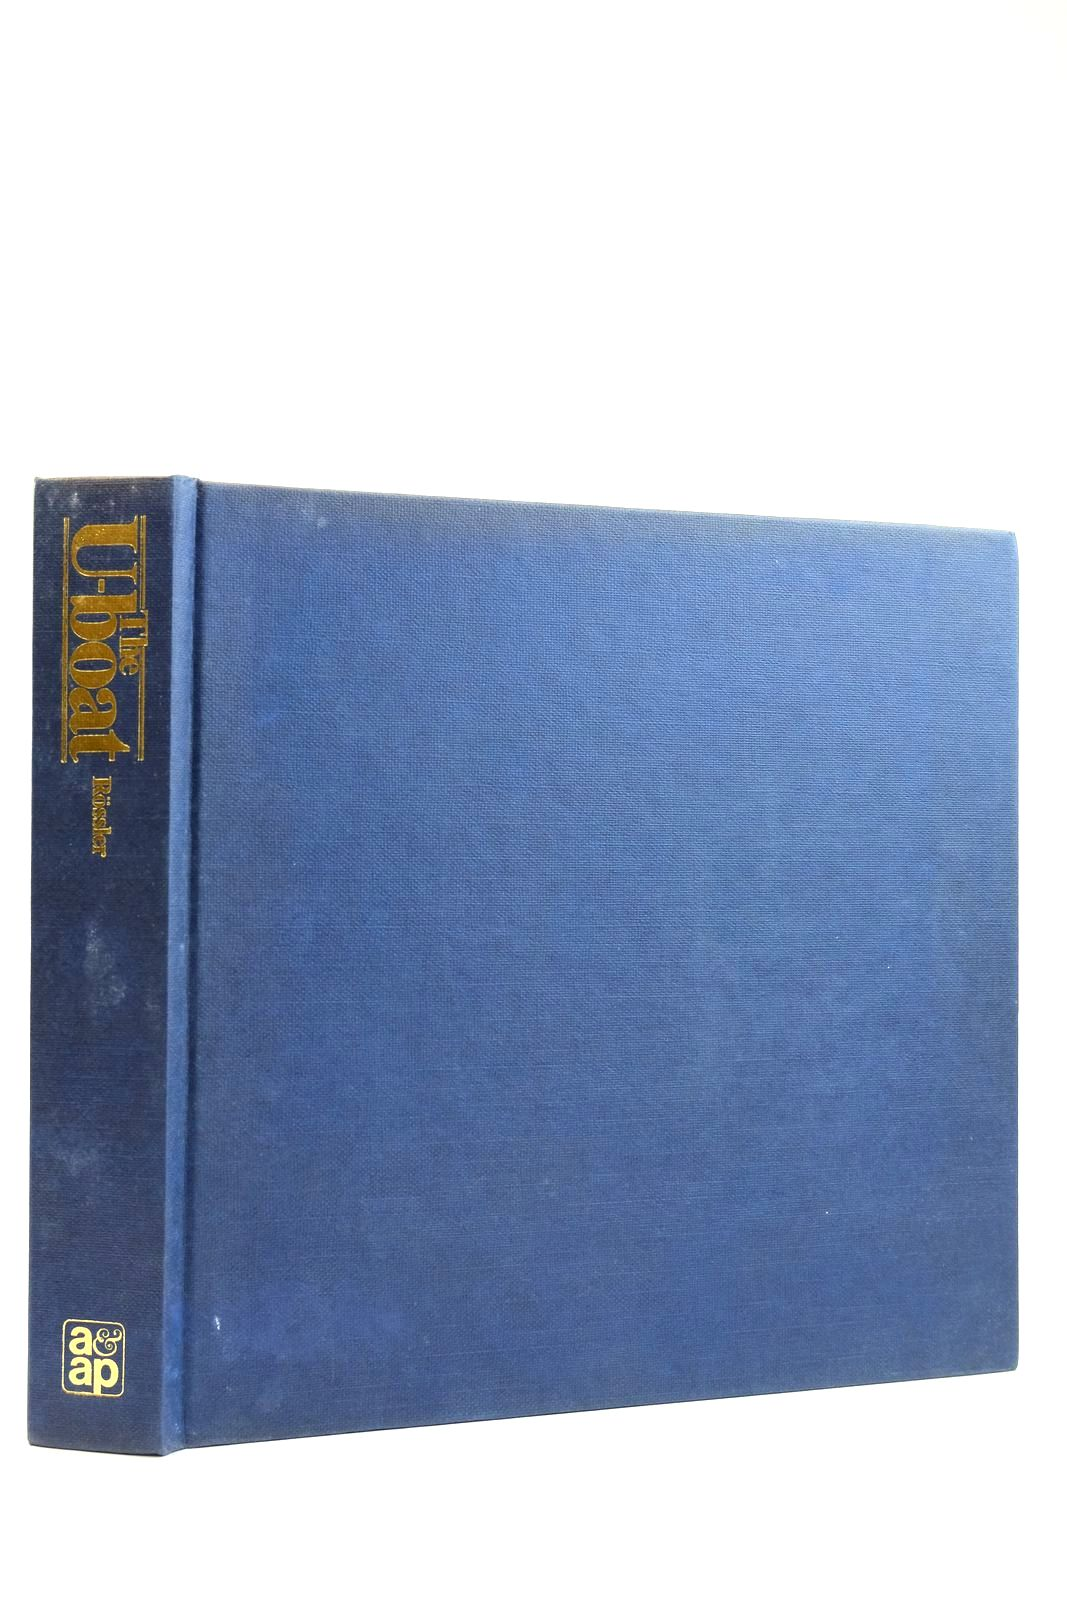 Photo of THE U-BOAT written by Rossler, Eberhard published by Arms & Armour Press (STOCK CODE: 2132098)  for sale by Stella & Rose's Books